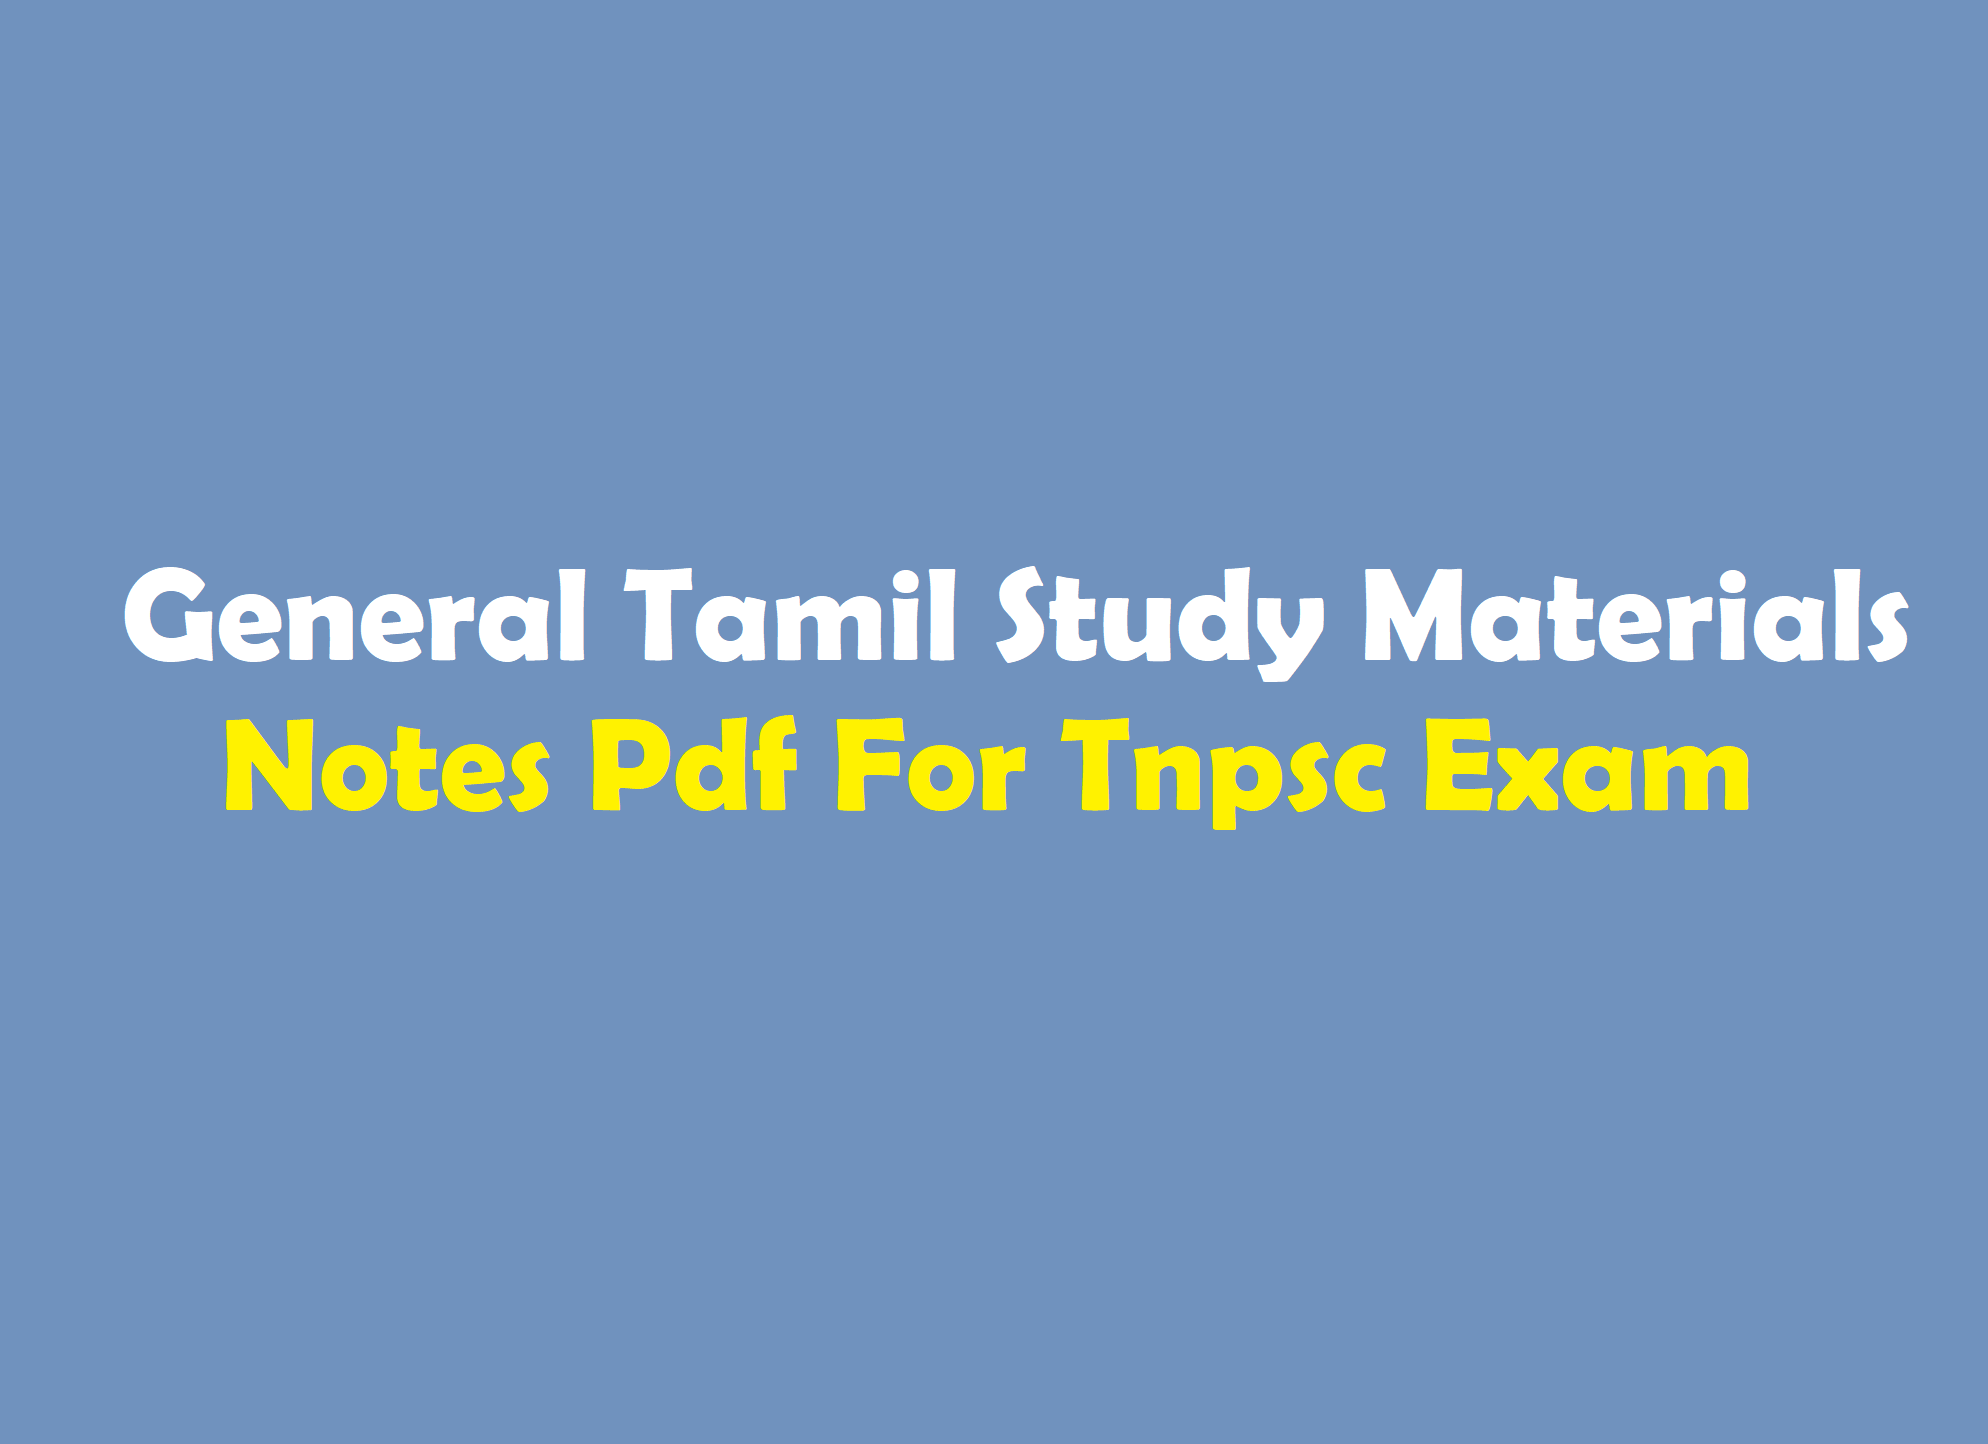 General Tamil Study Materials Notes Pdf For Tnpsc Exam - WINMEEN